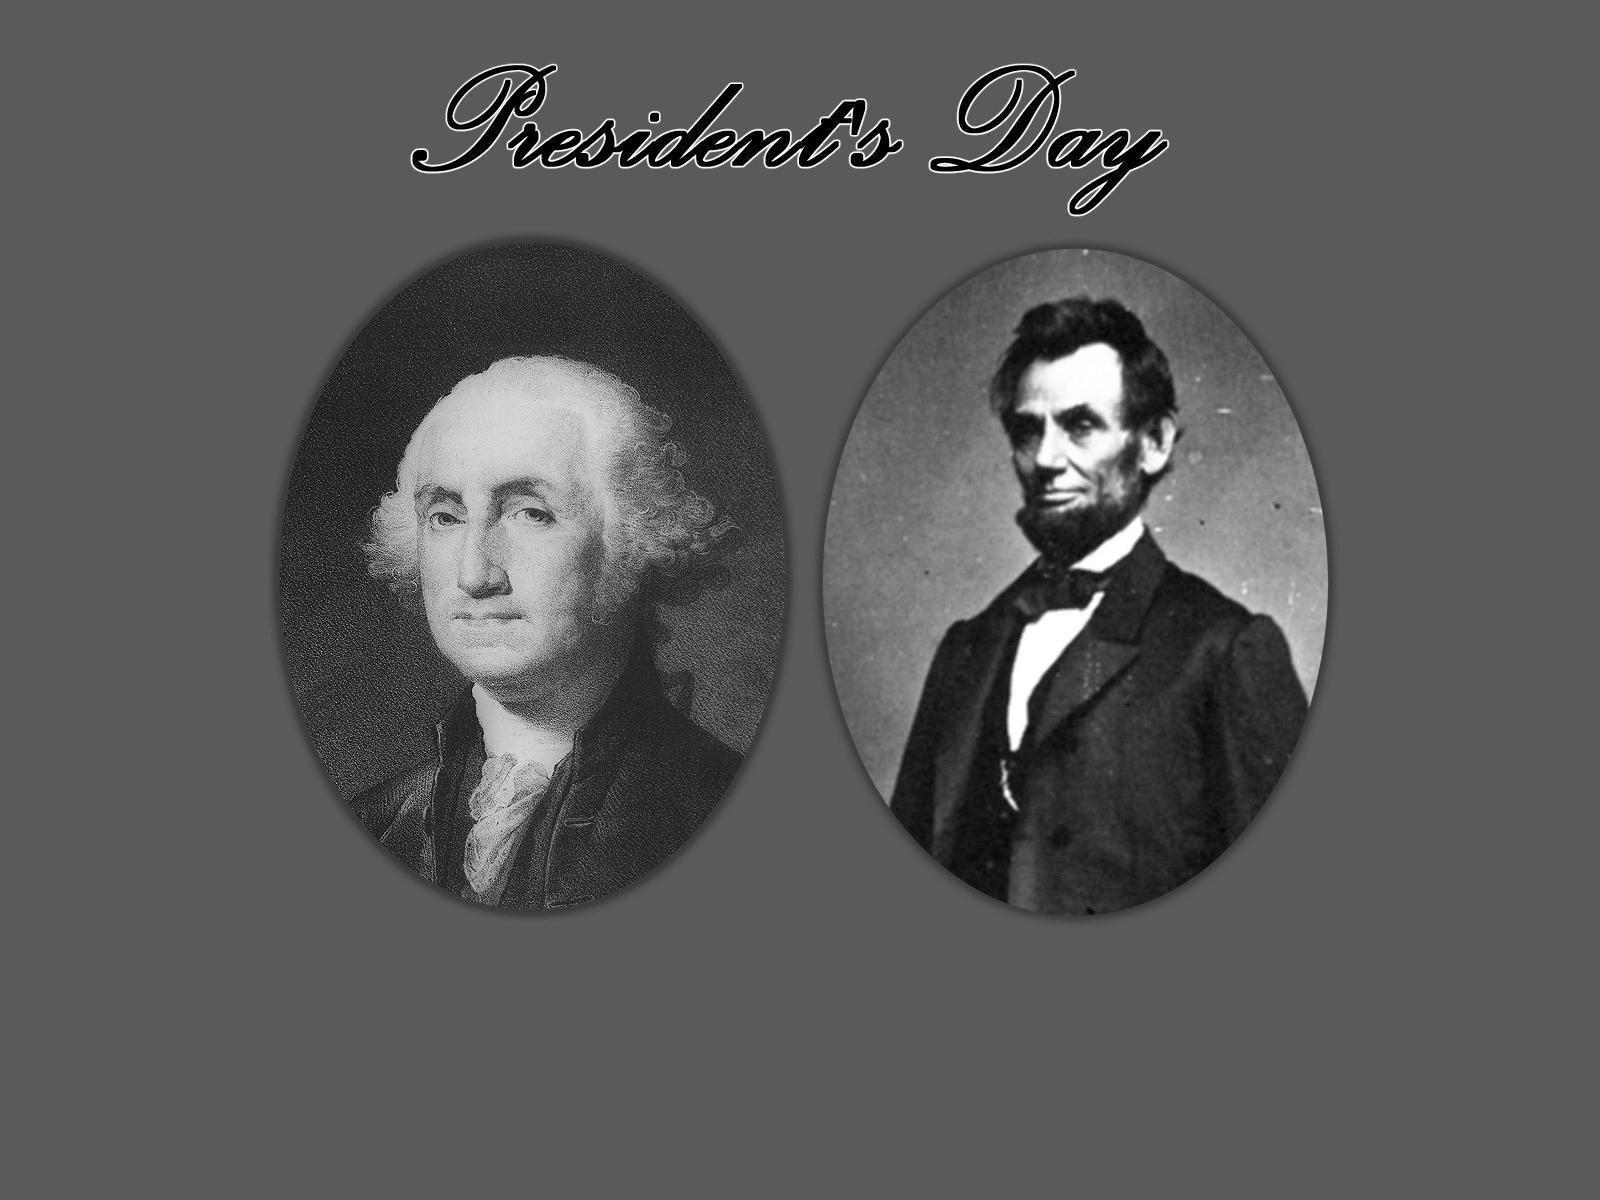 President's Day Wallpaper and Backgrounds for your desktop